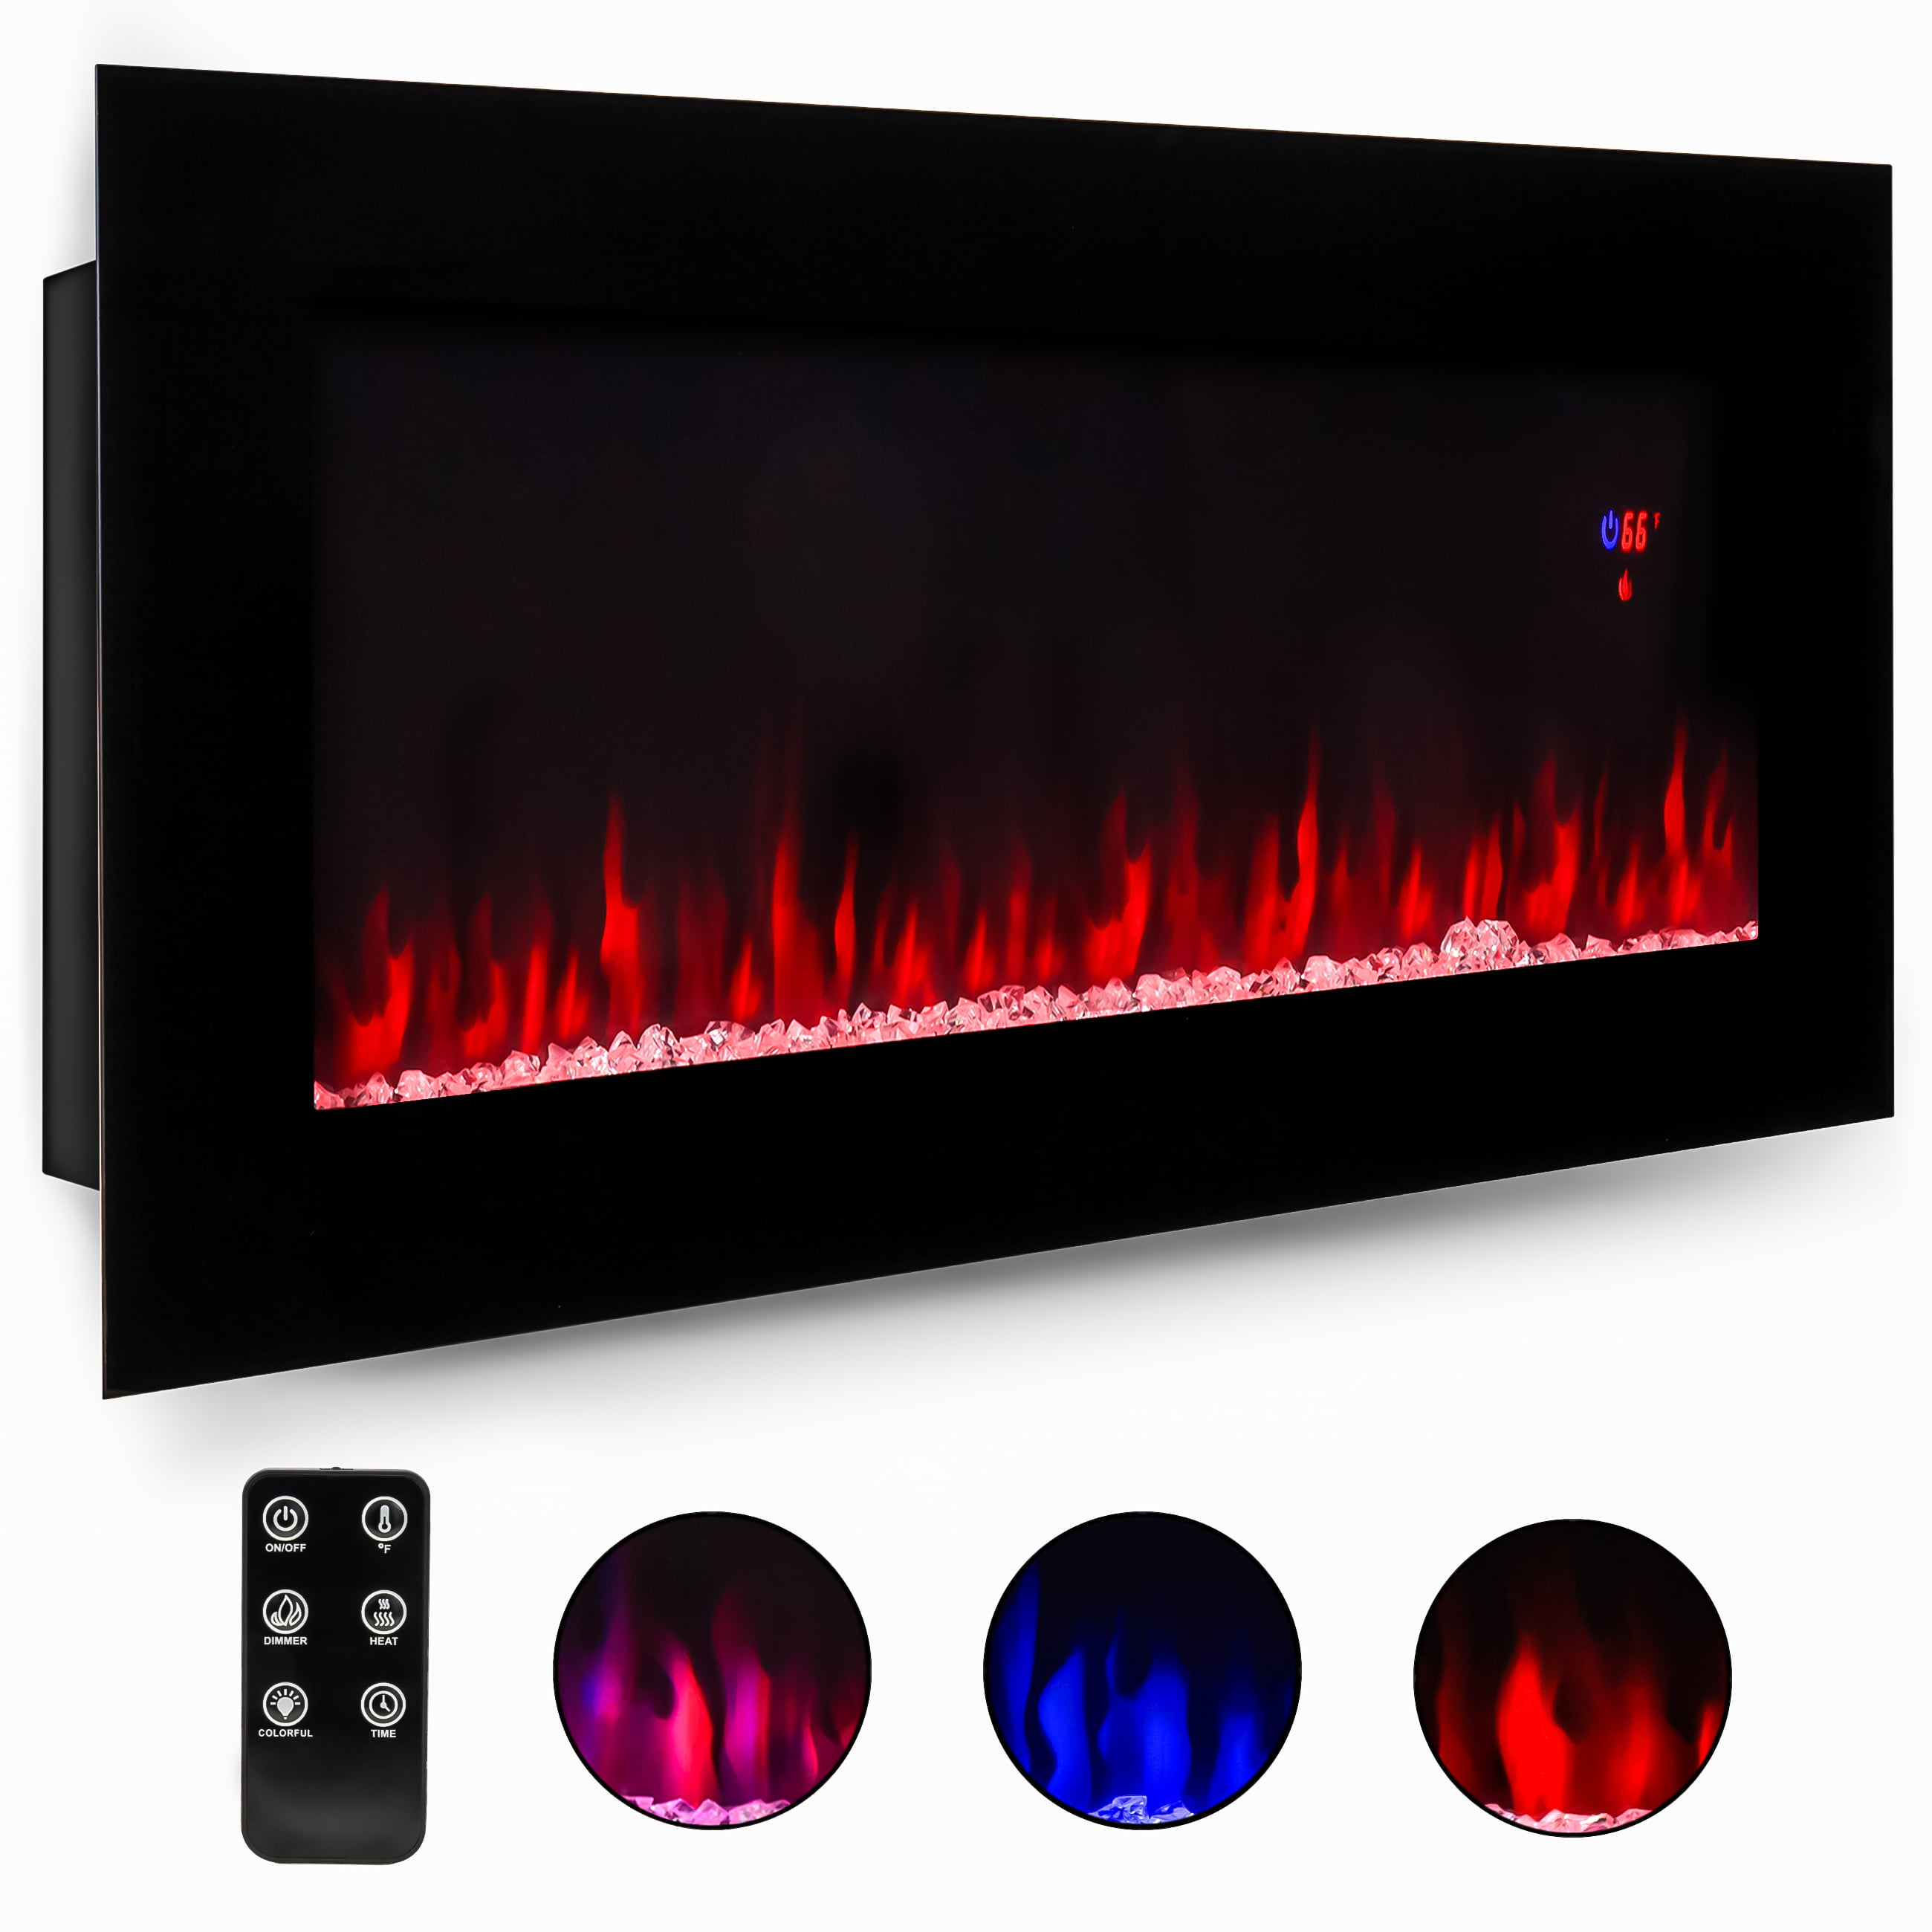 Best Choice Products 50in Electric Wall Mounted Smokeless Ventless Fireplace Heater w  Adjustable Heat, Remote... by Best Choice Products